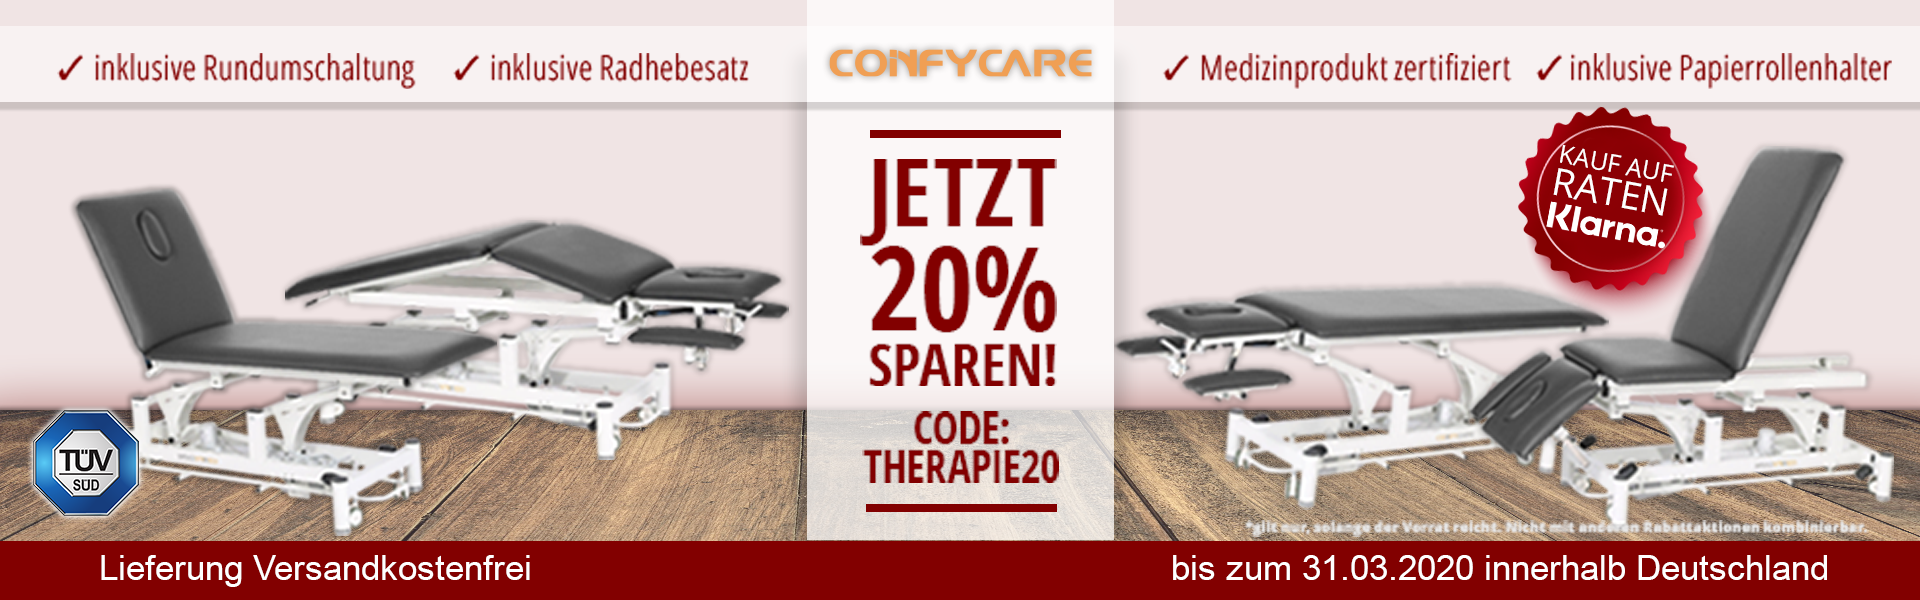 mlh-coinfycare-1920px-2